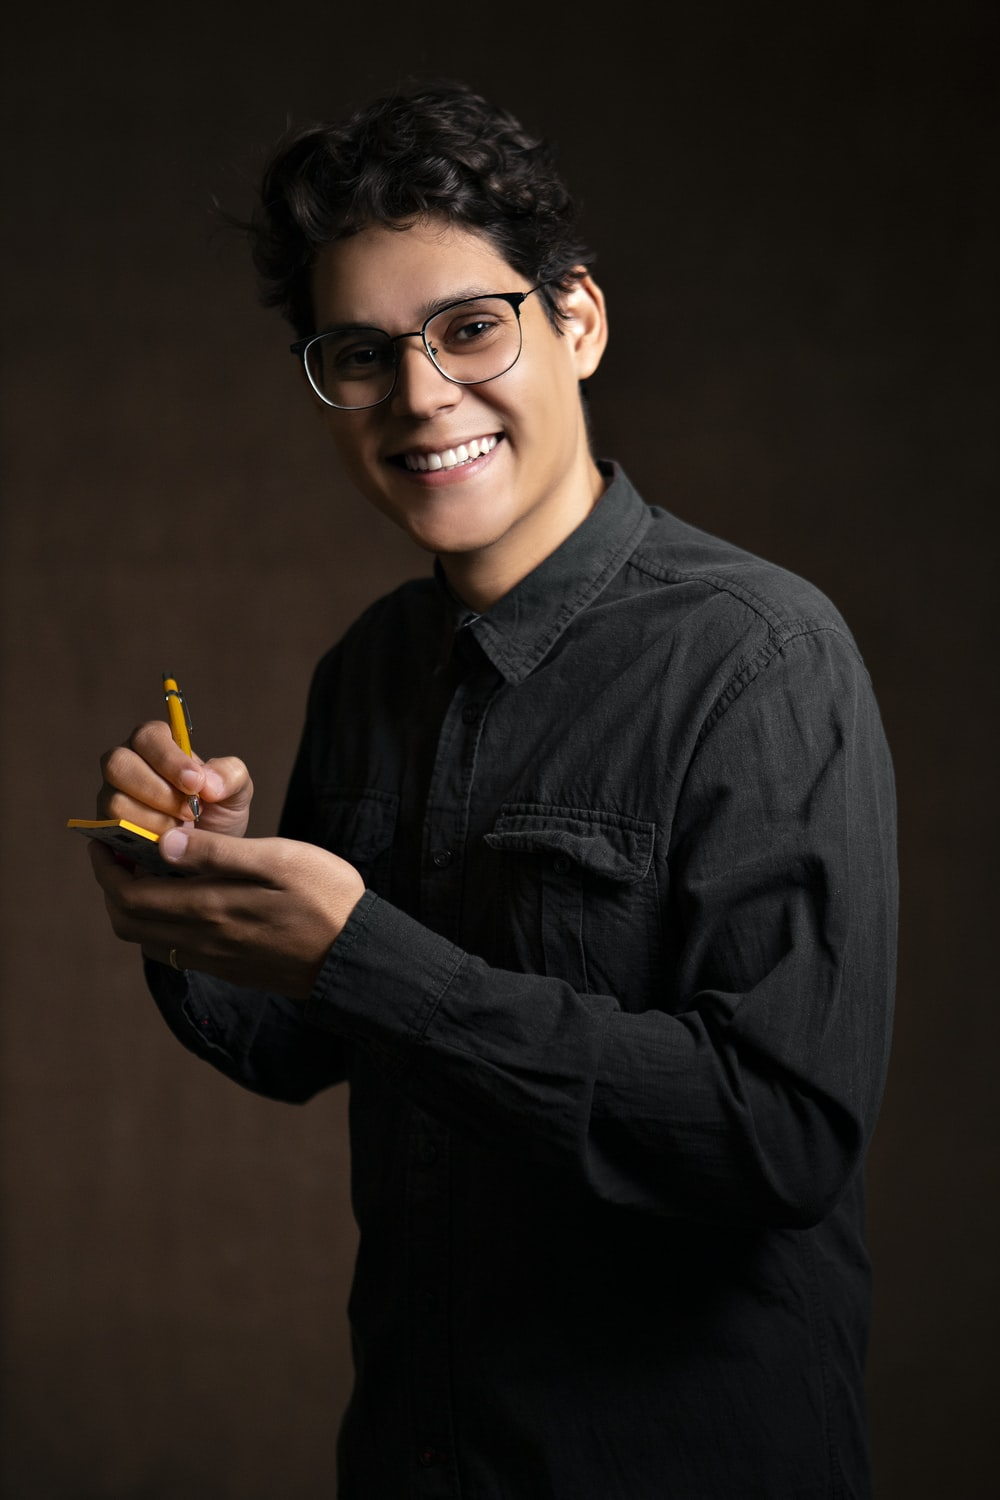 smiling man wearing black denim jacket holding pencil and sticky note while standing